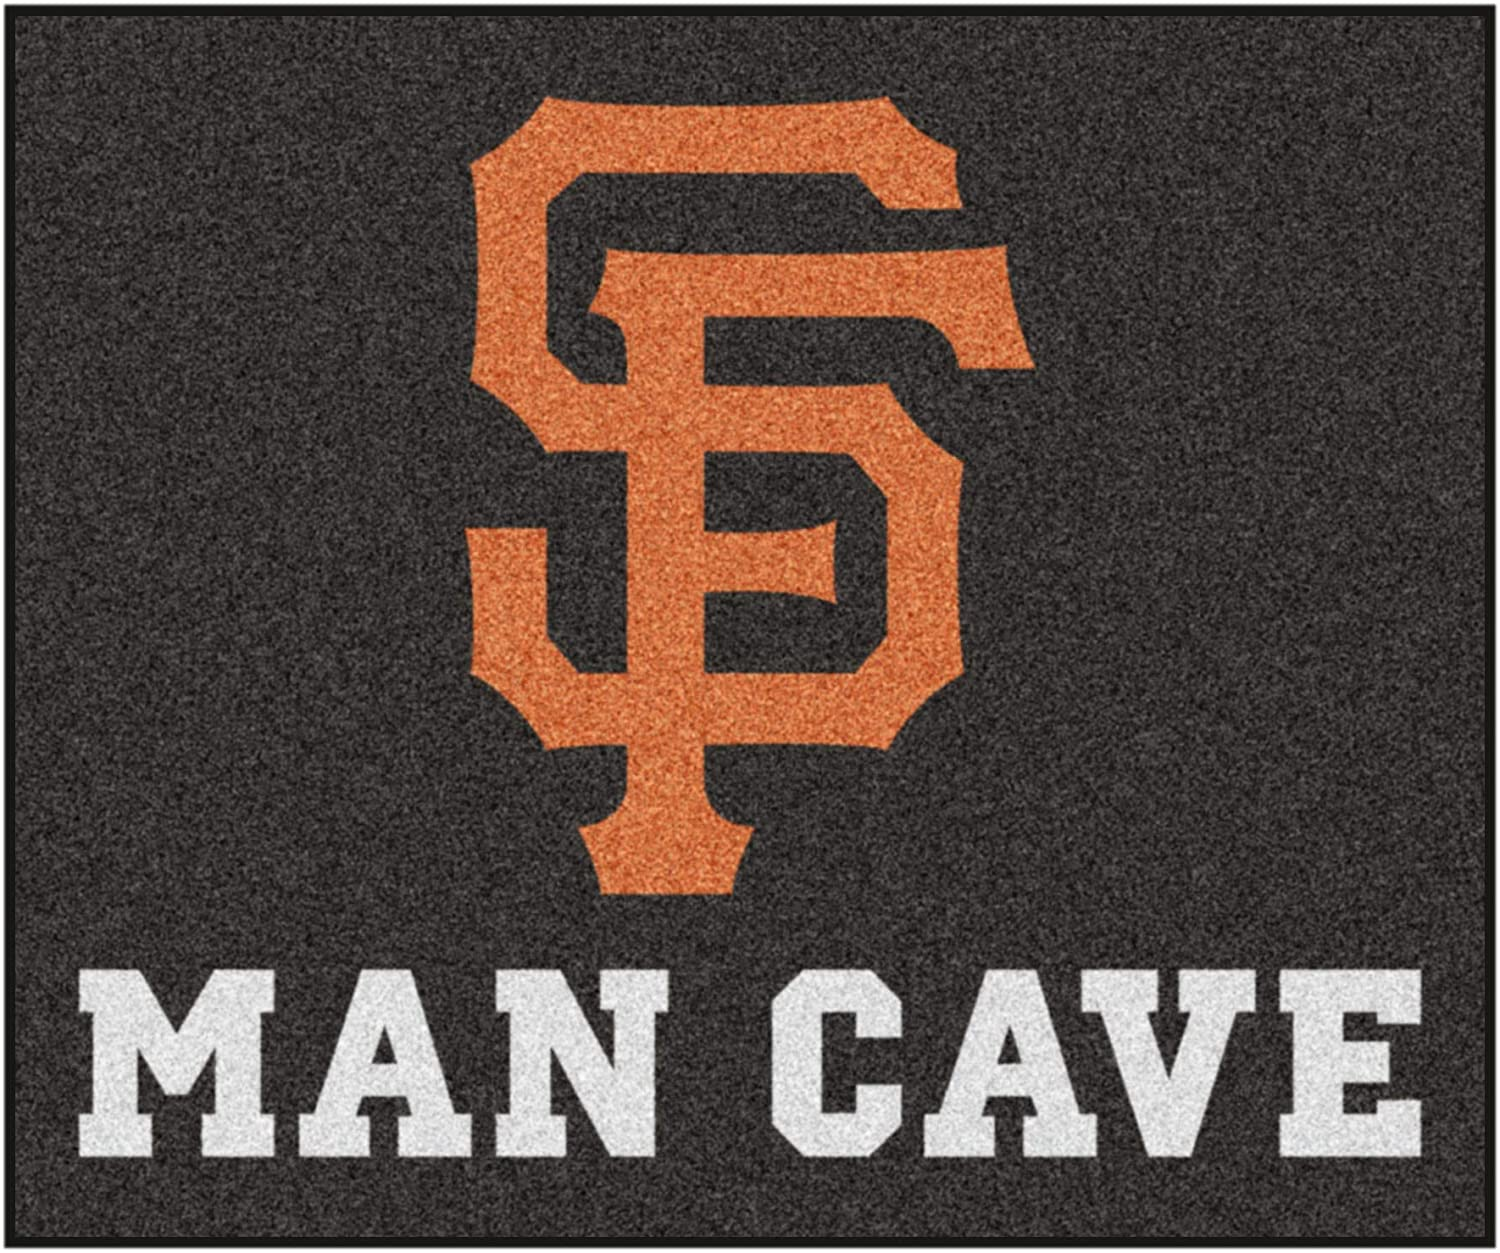 San Francisco Giants Man Cave Tailgater 59.5x71 FANMATS MLB